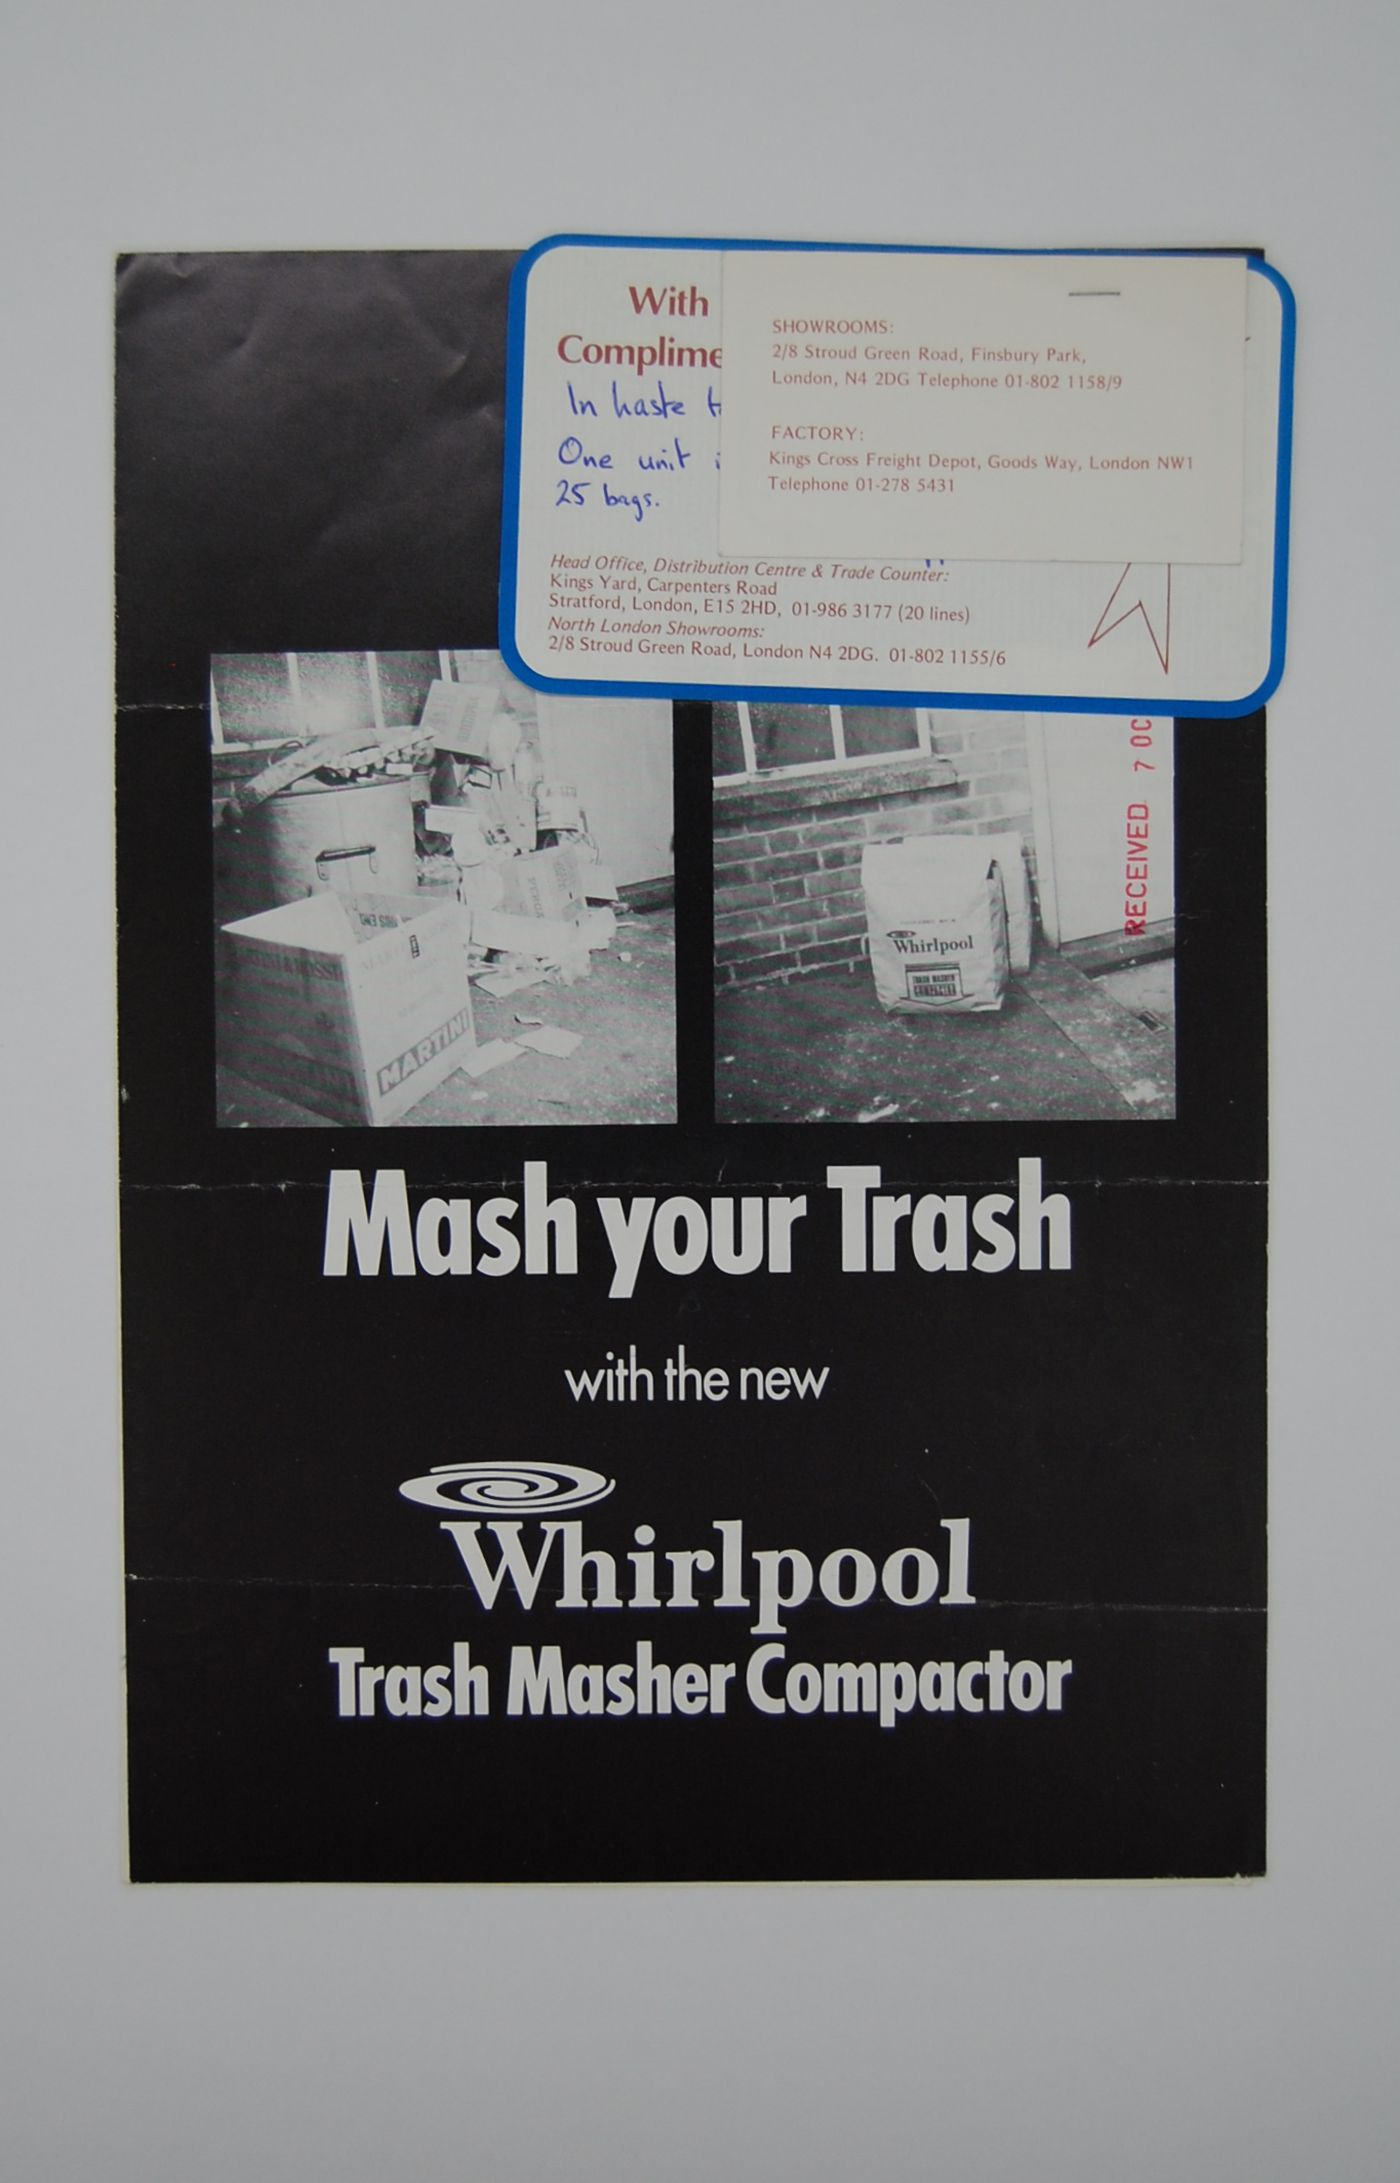 Mash your trash with the new Whirlpool trash masher compacter